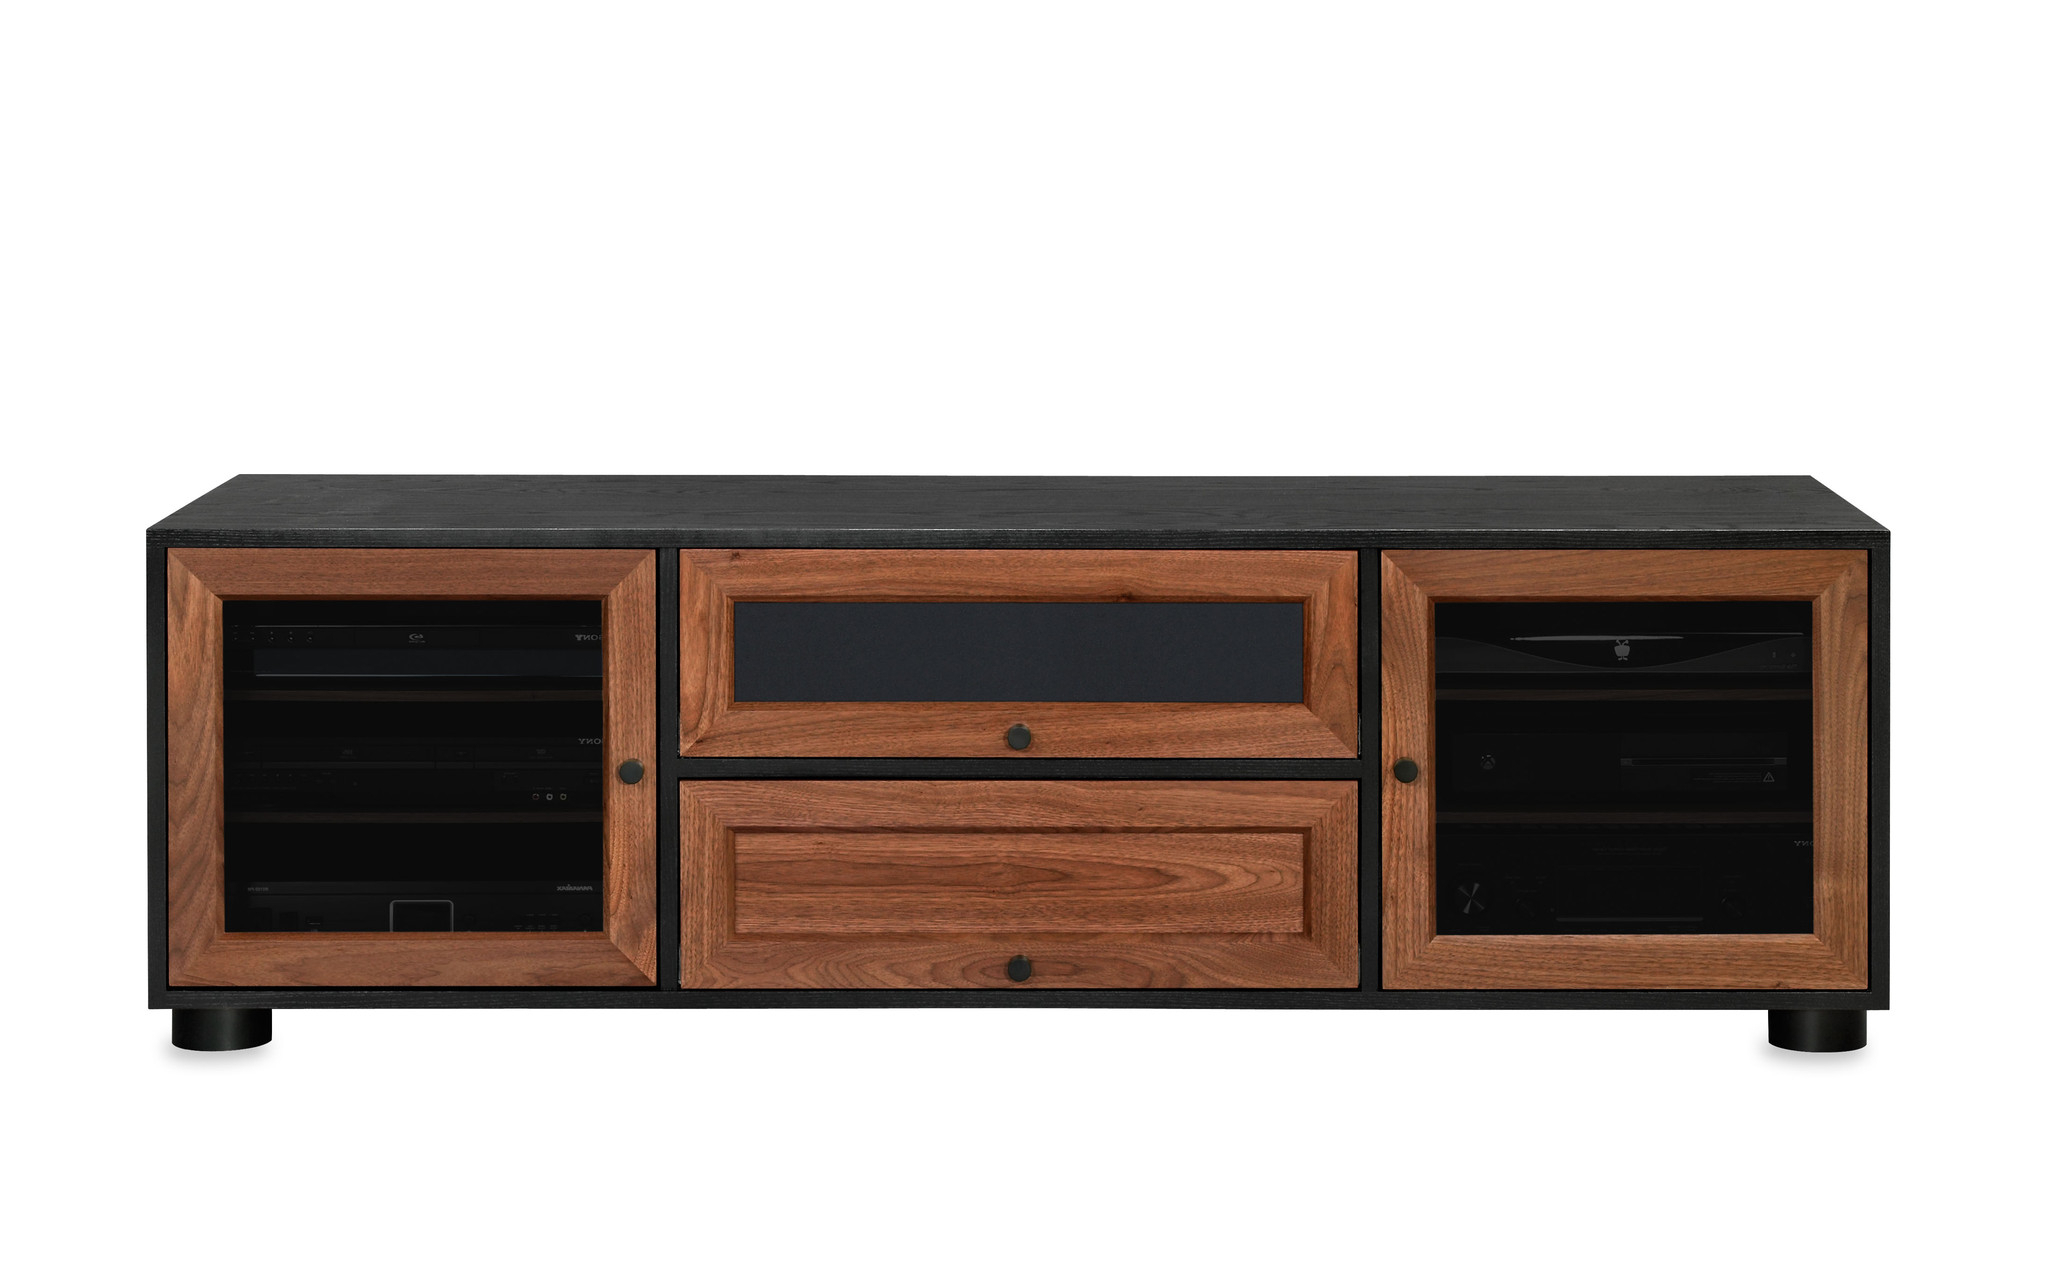 Thrifty Inch Boy Style Wood Tv Stand Rustic Brownwalker Edison Regarding Annabelle Black 70 Inch Tv Stands (View 7 of 20)